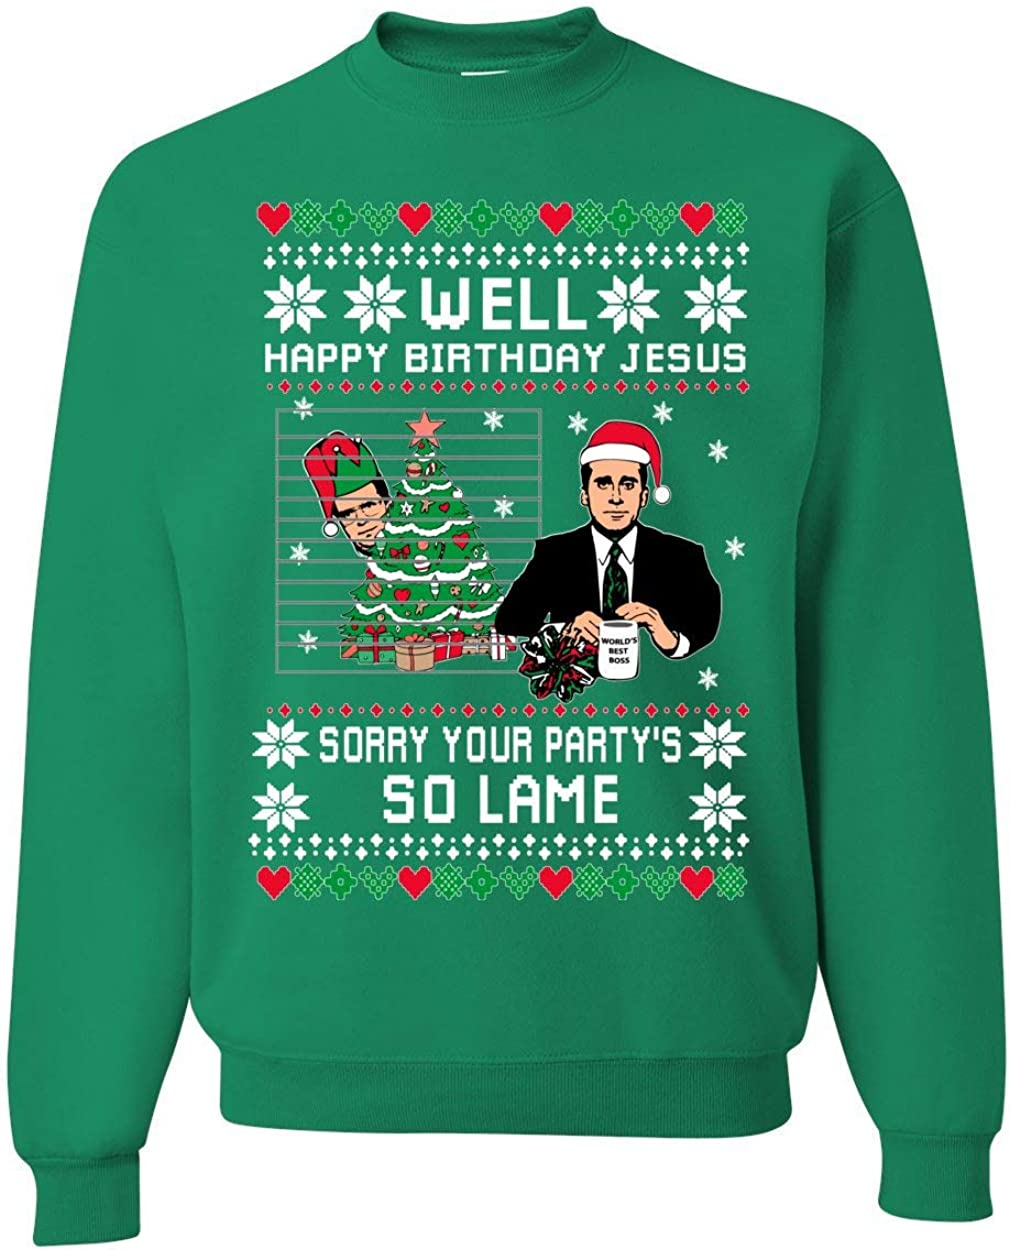 Well Happy Birthday Jesus Funny Quote Office | Unisex Ugly Christmas Sweater Crewneck Sweatshirt